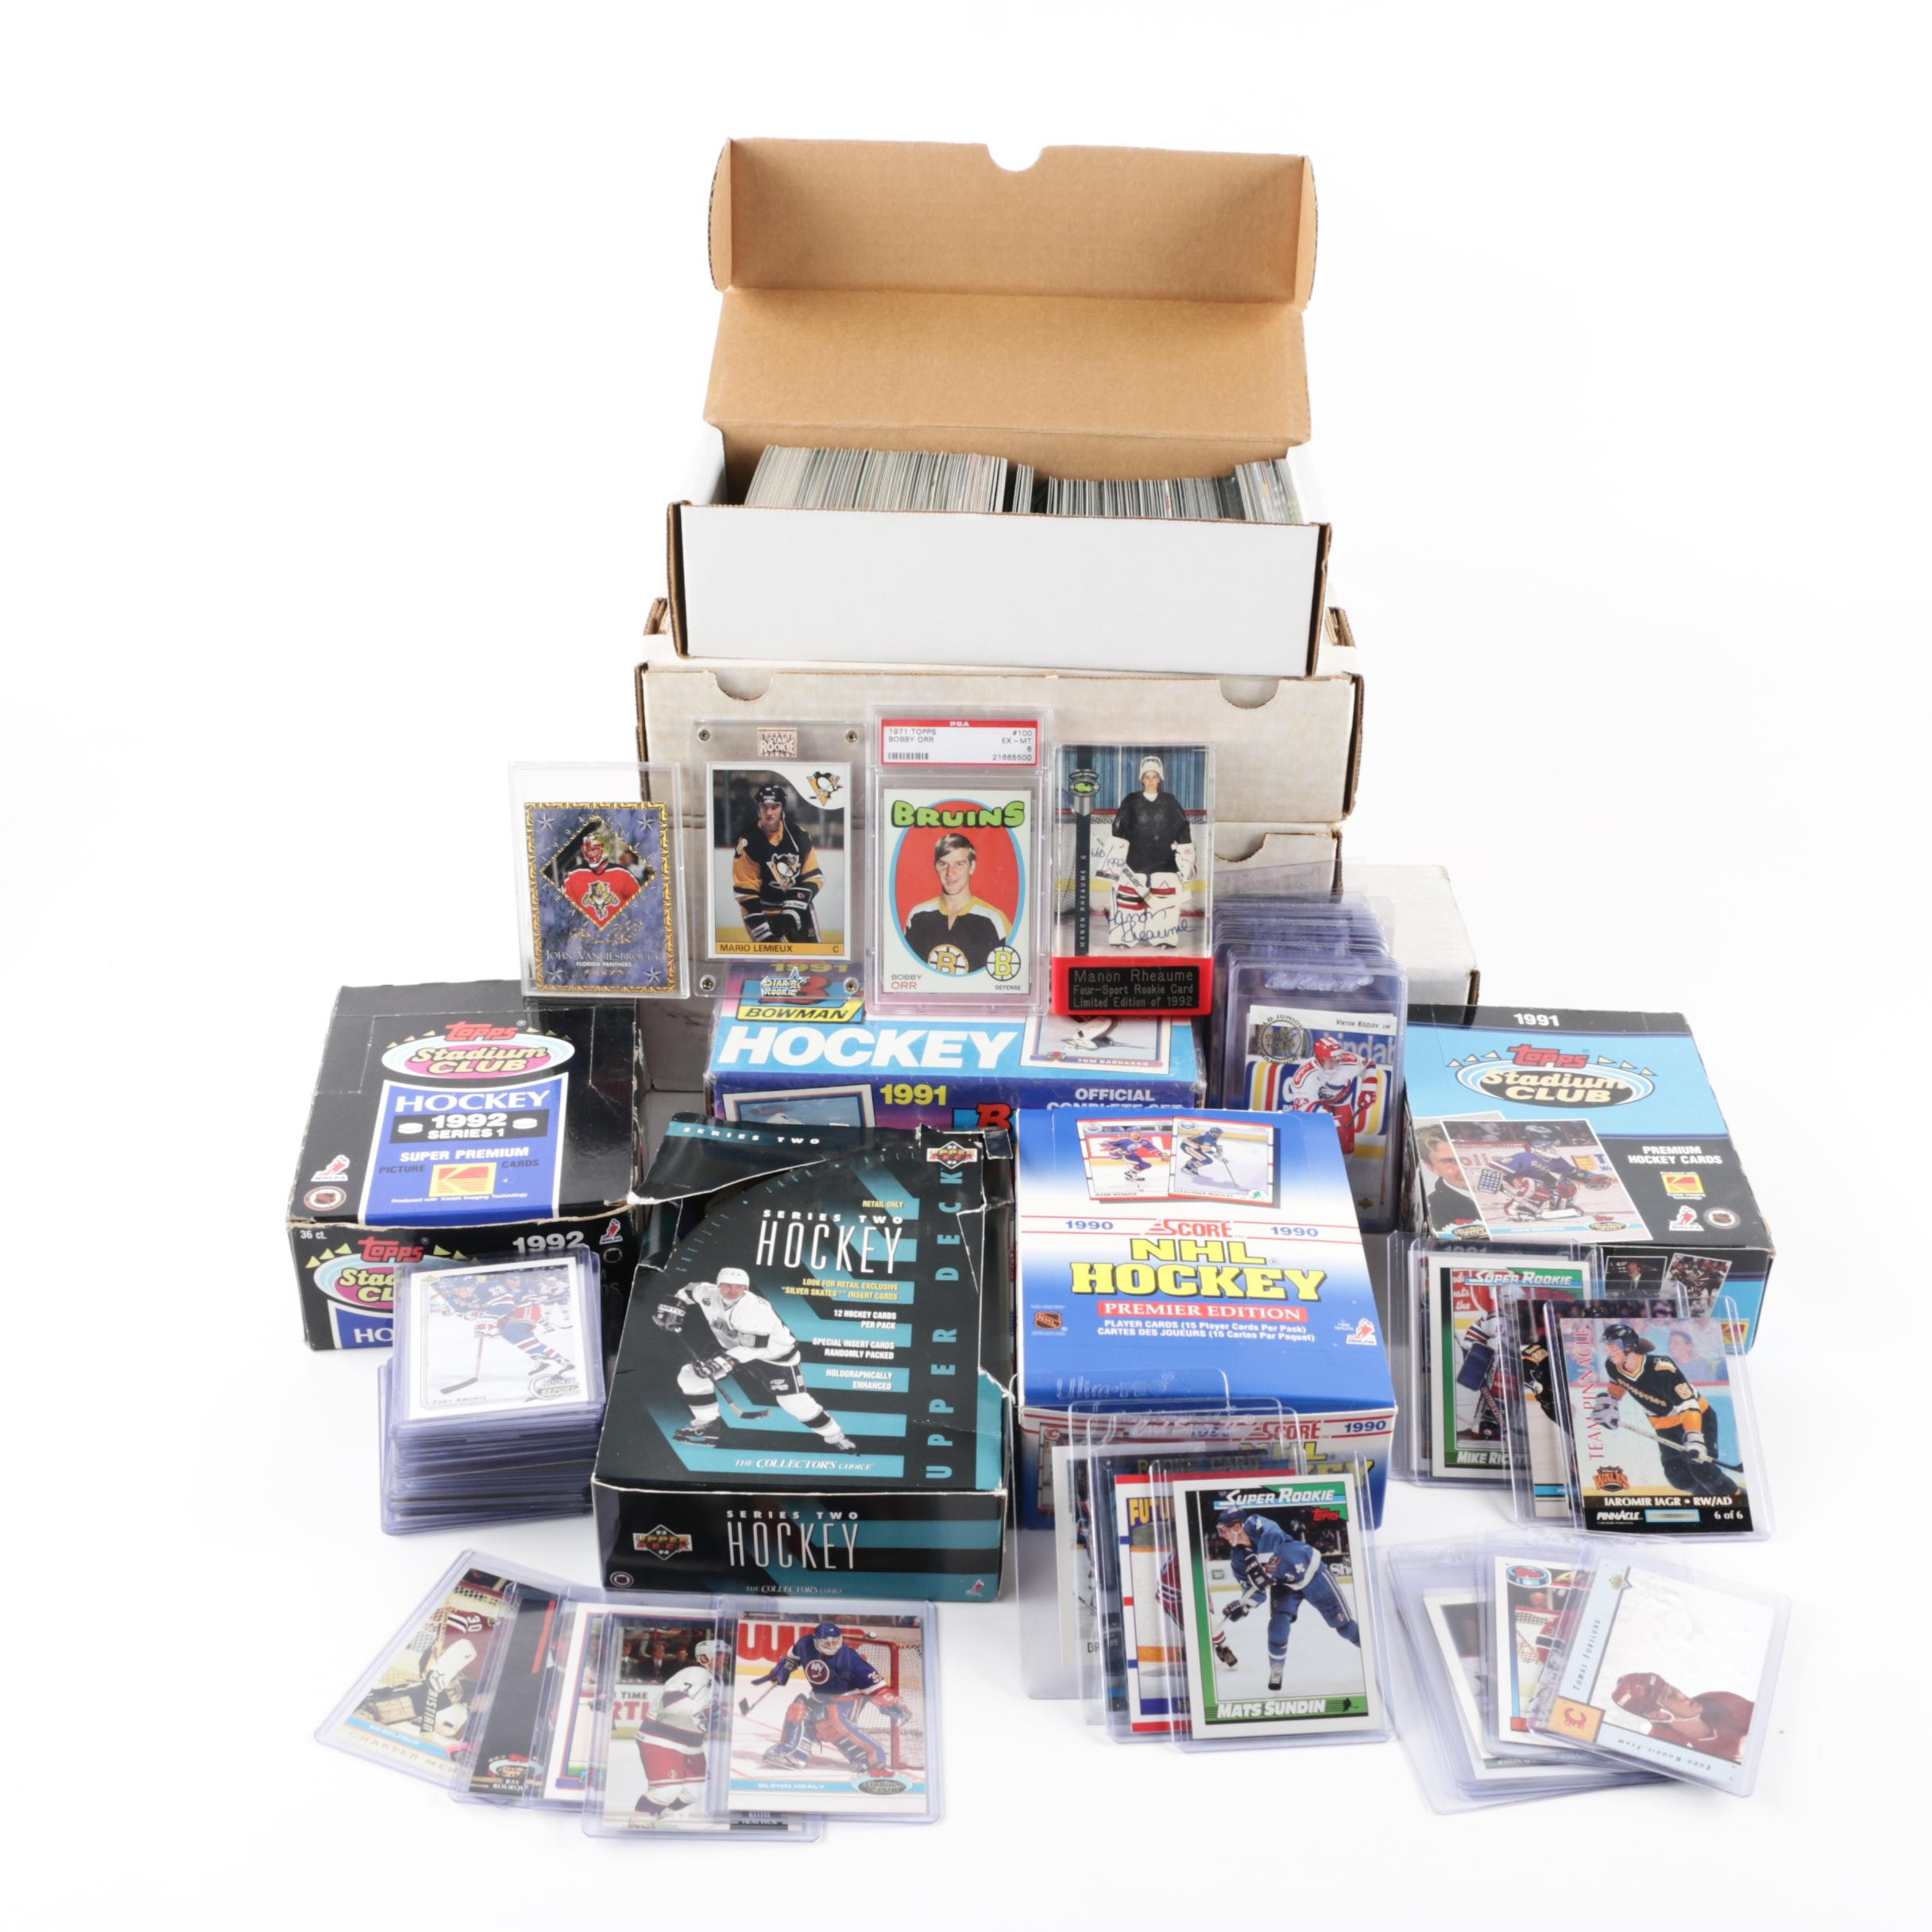 1985 Topps Mario Lemieux Rookie Card, 1971 Bobby Orr, Signed Rhéaume and More